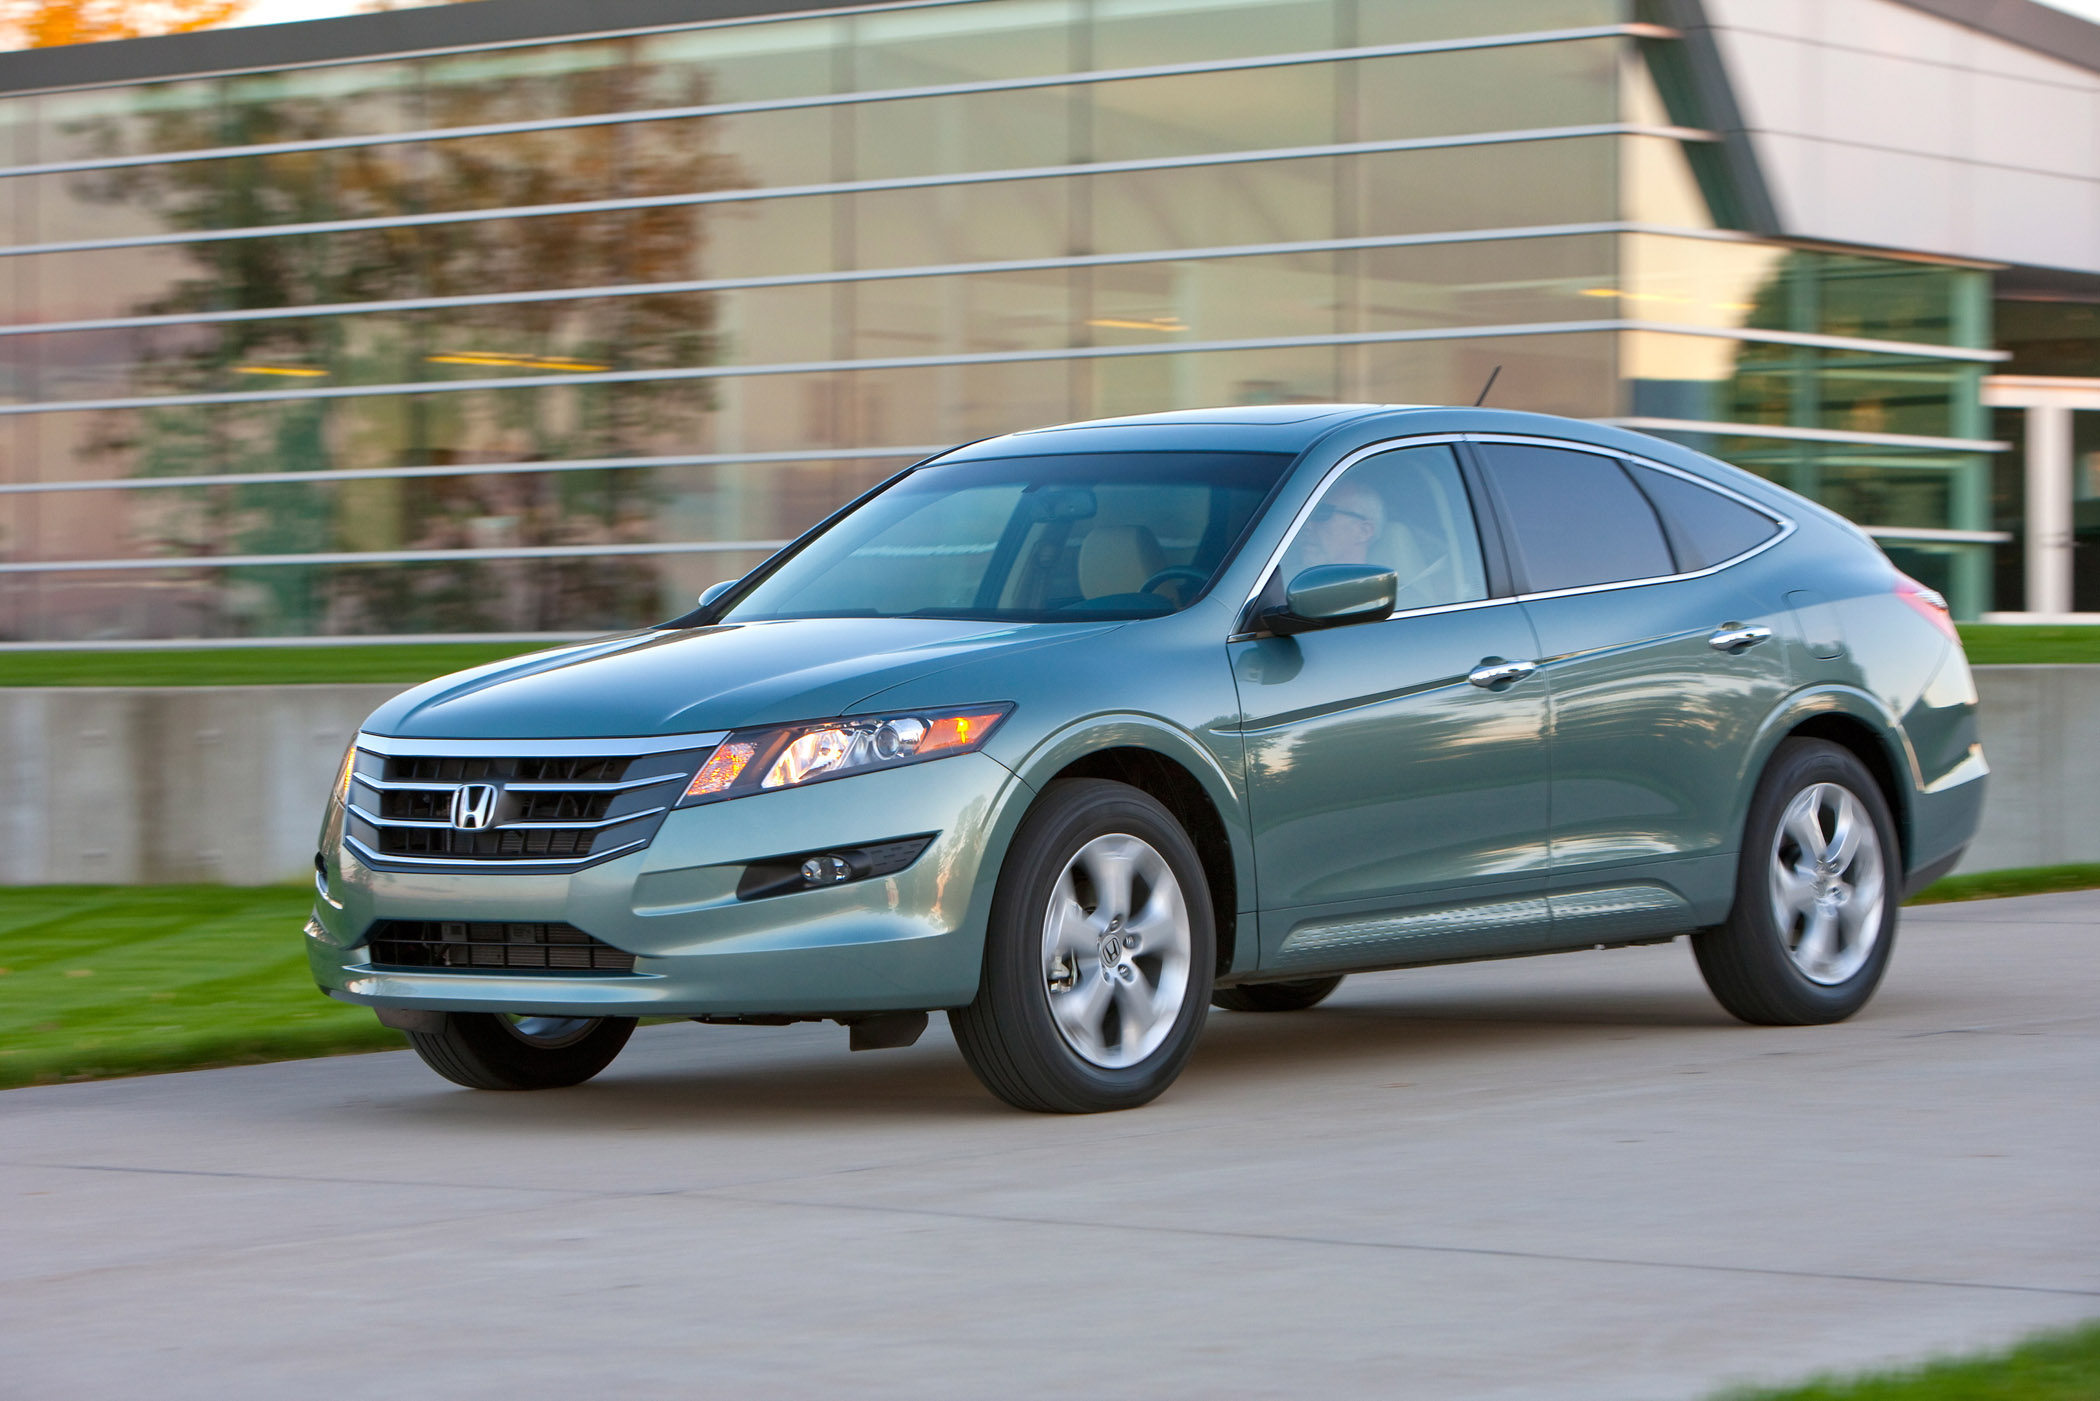 This Accord Is Not A Hybrid Of Motor Parts But Rather Body Types Cross Between Sedan And Utility Vehicle Honda Produces The All New